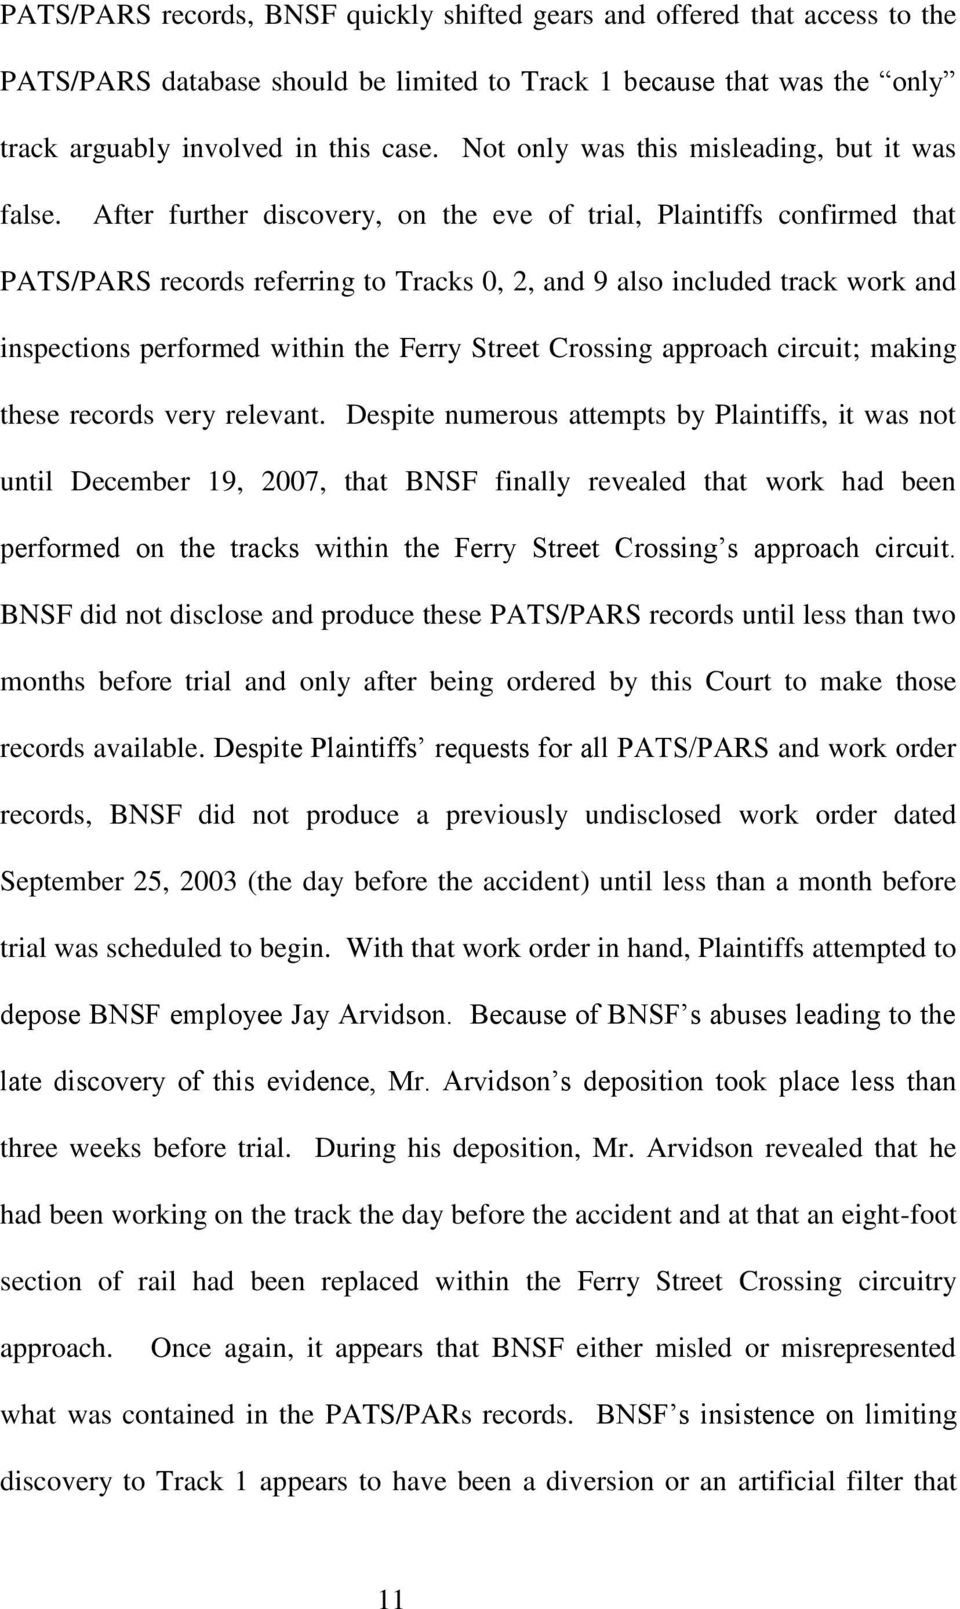 After further discovery, on the eve of trial, Plaintiffs confirmed that PATS/PARS records referring to Tracks 0, 2, and 9 also included track work and inspections performed within the Ferry Street